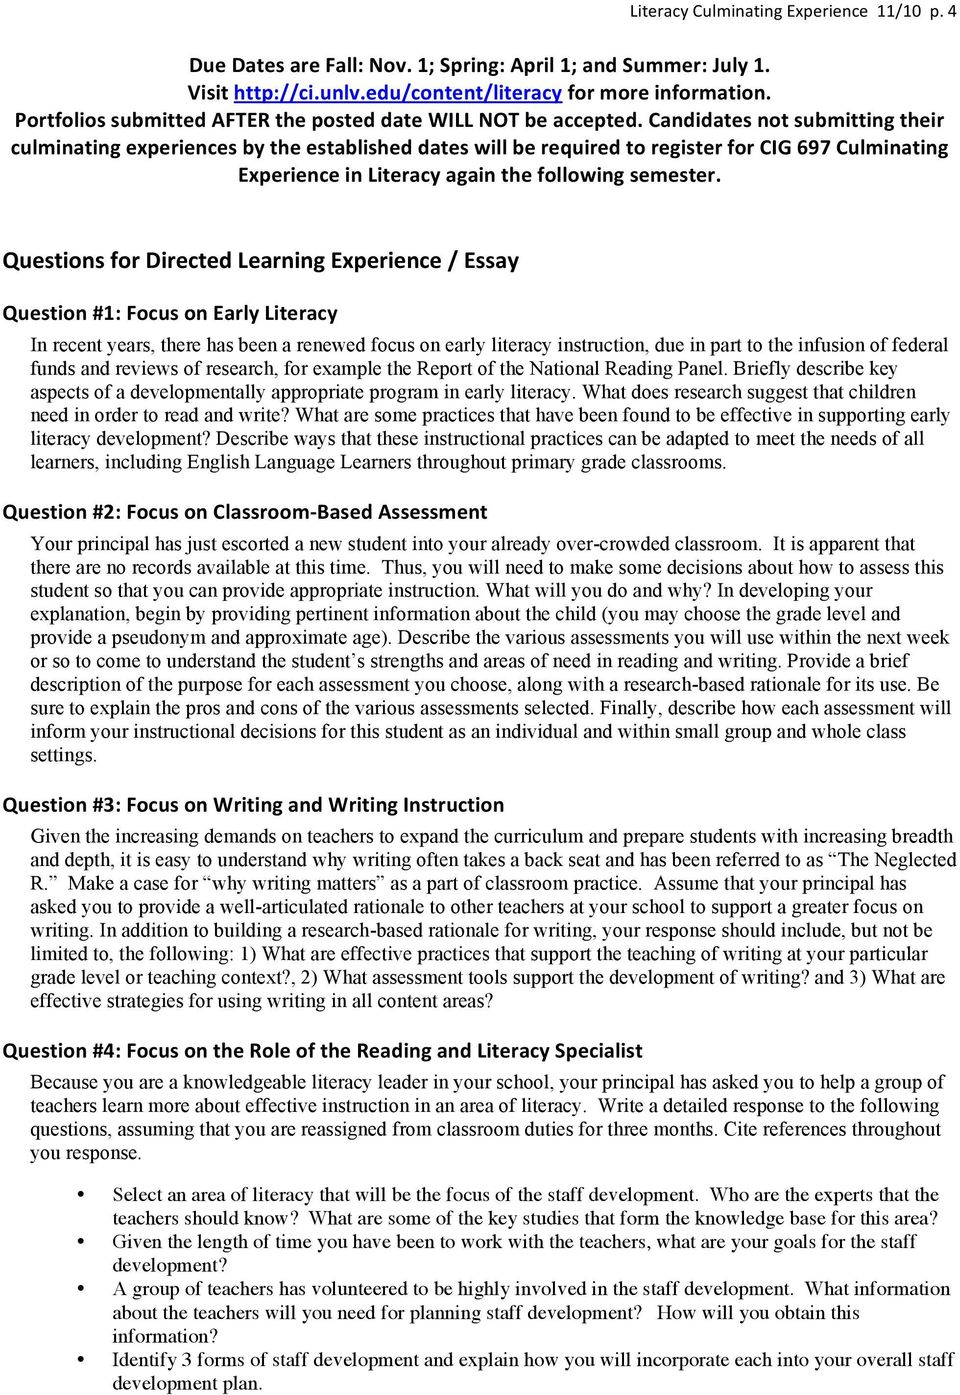 Essay Of Newspaper Candidates Not Submitting Their Culminating Experiences By The Established  Dates Will Be Required To Register For Science Essay Examples also What Is A Thesis Statement In An Essay Examples Purposes For The Culminating Experience General Guidelines  Pdf Modest Proposal Essay Examples